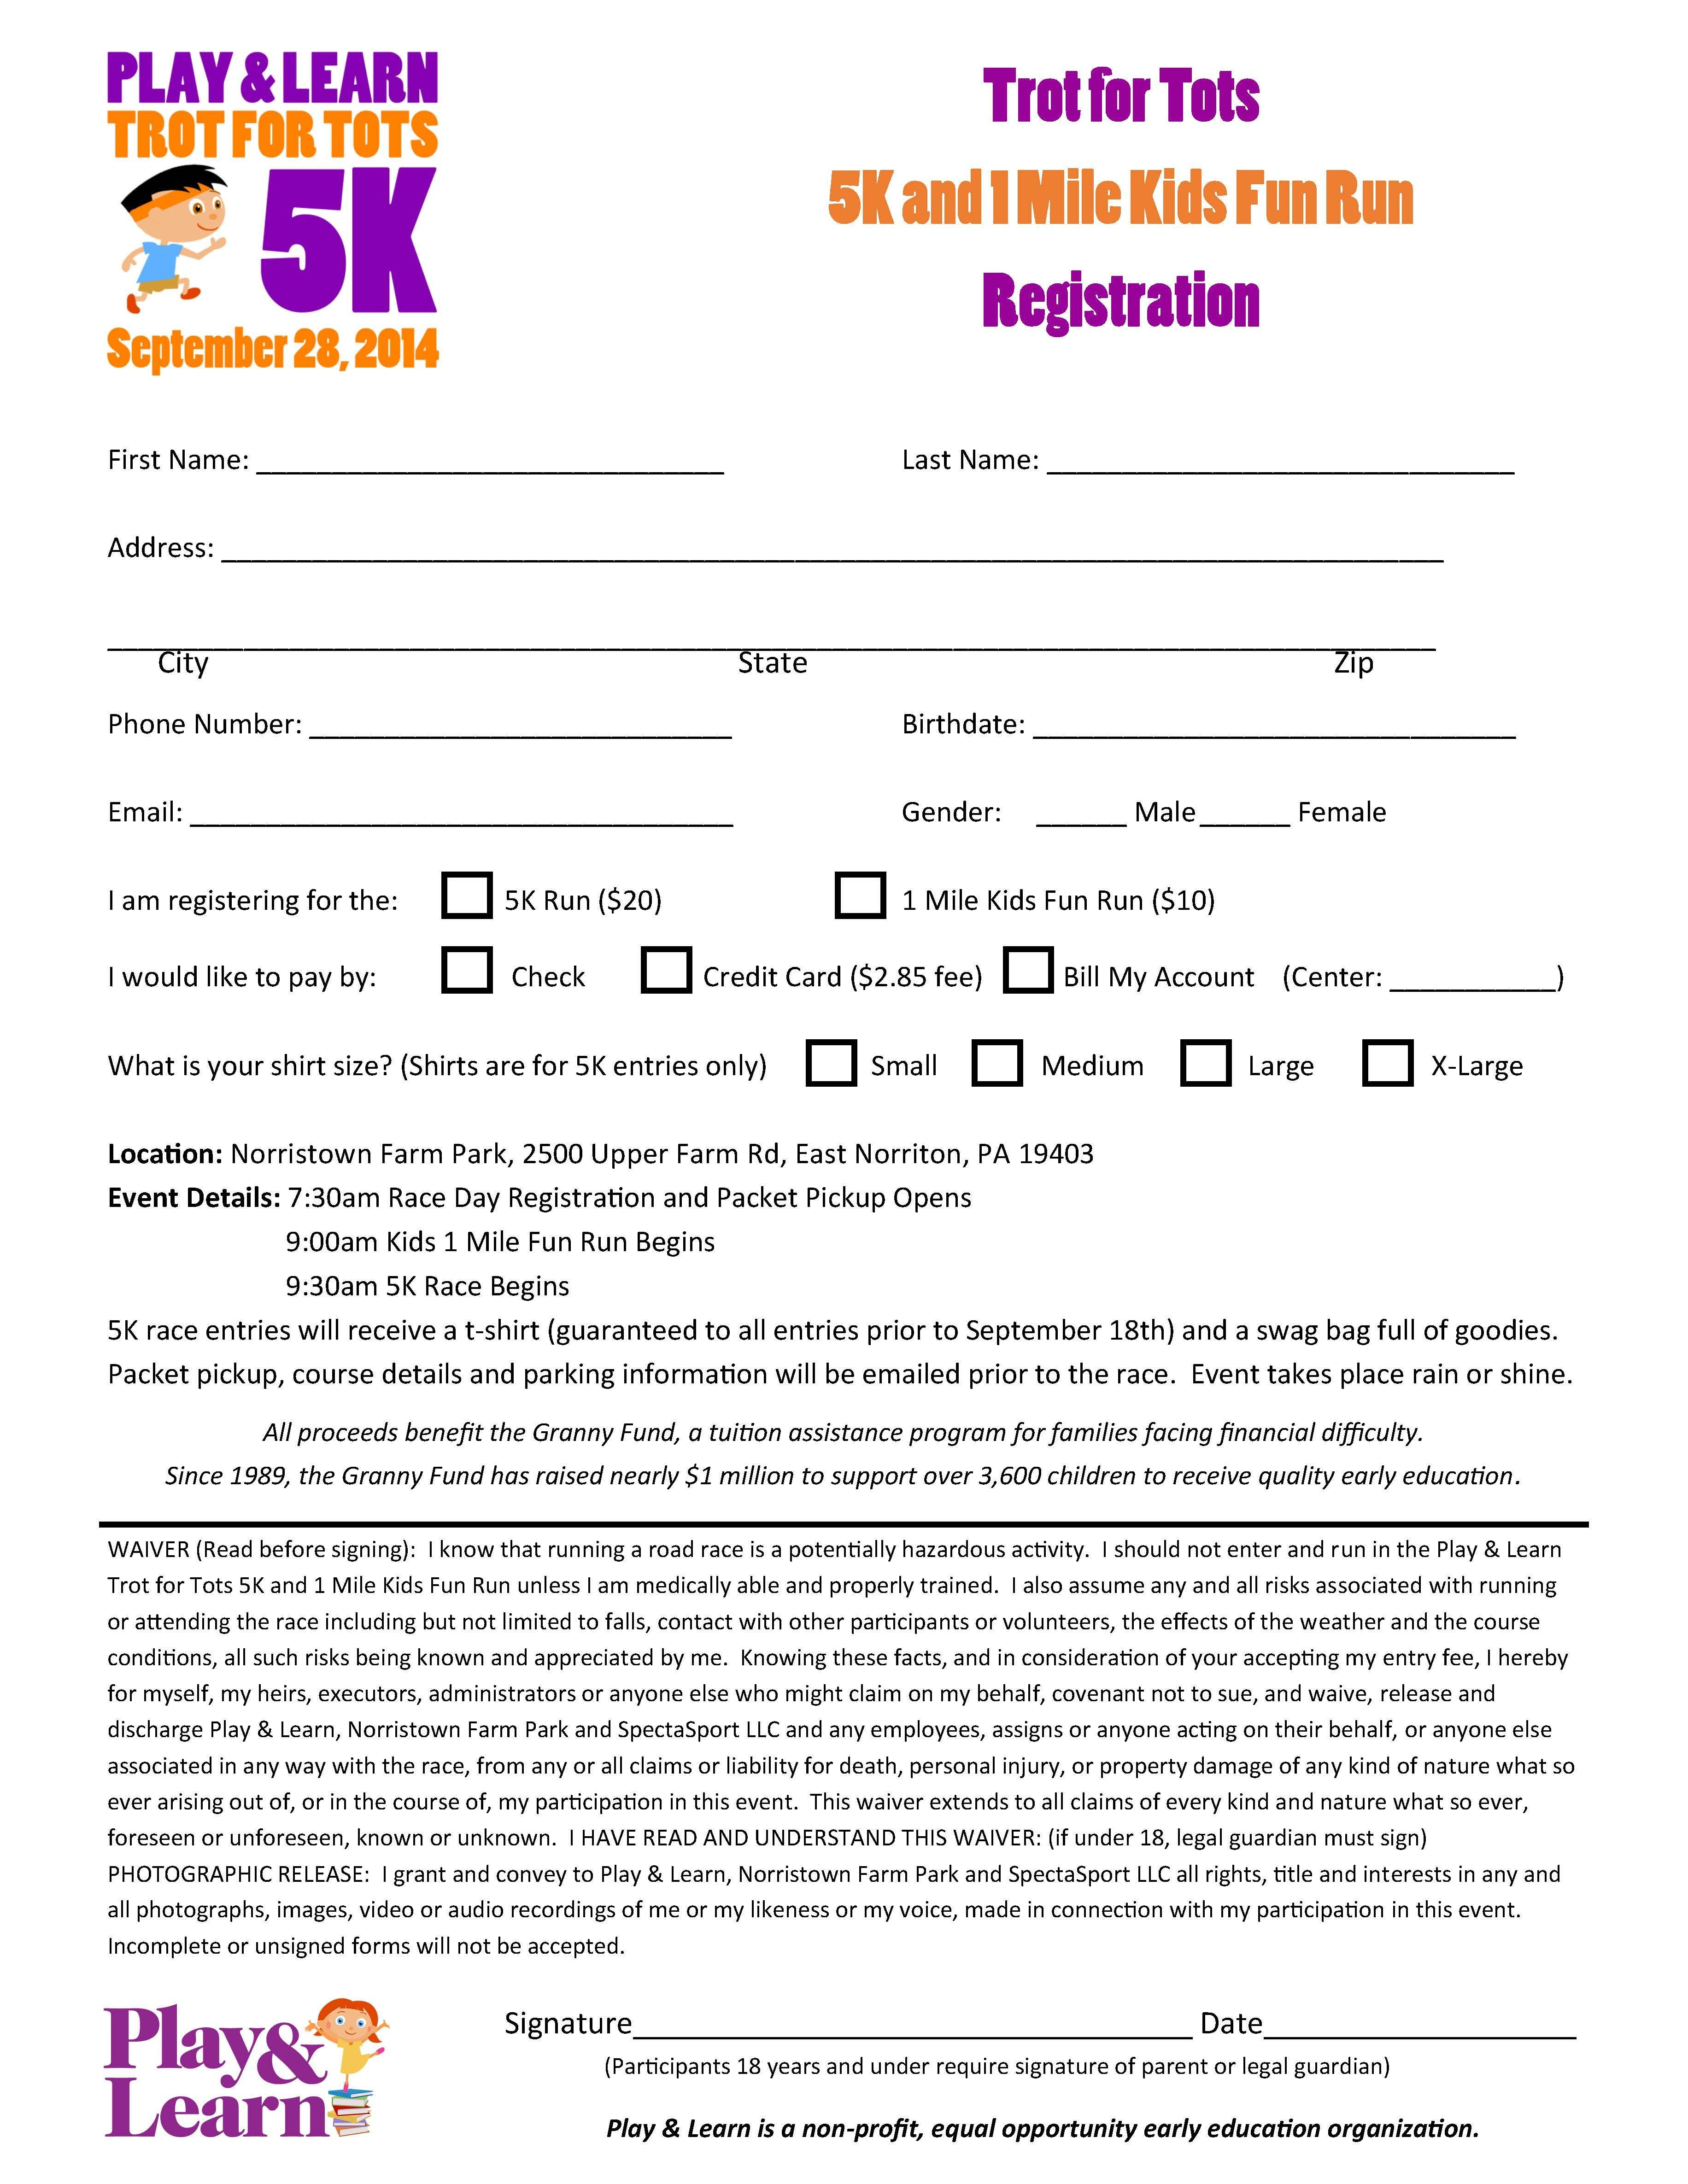 5k Registration form Template Registration form for Play & Learns 5k and Kids Fun Run